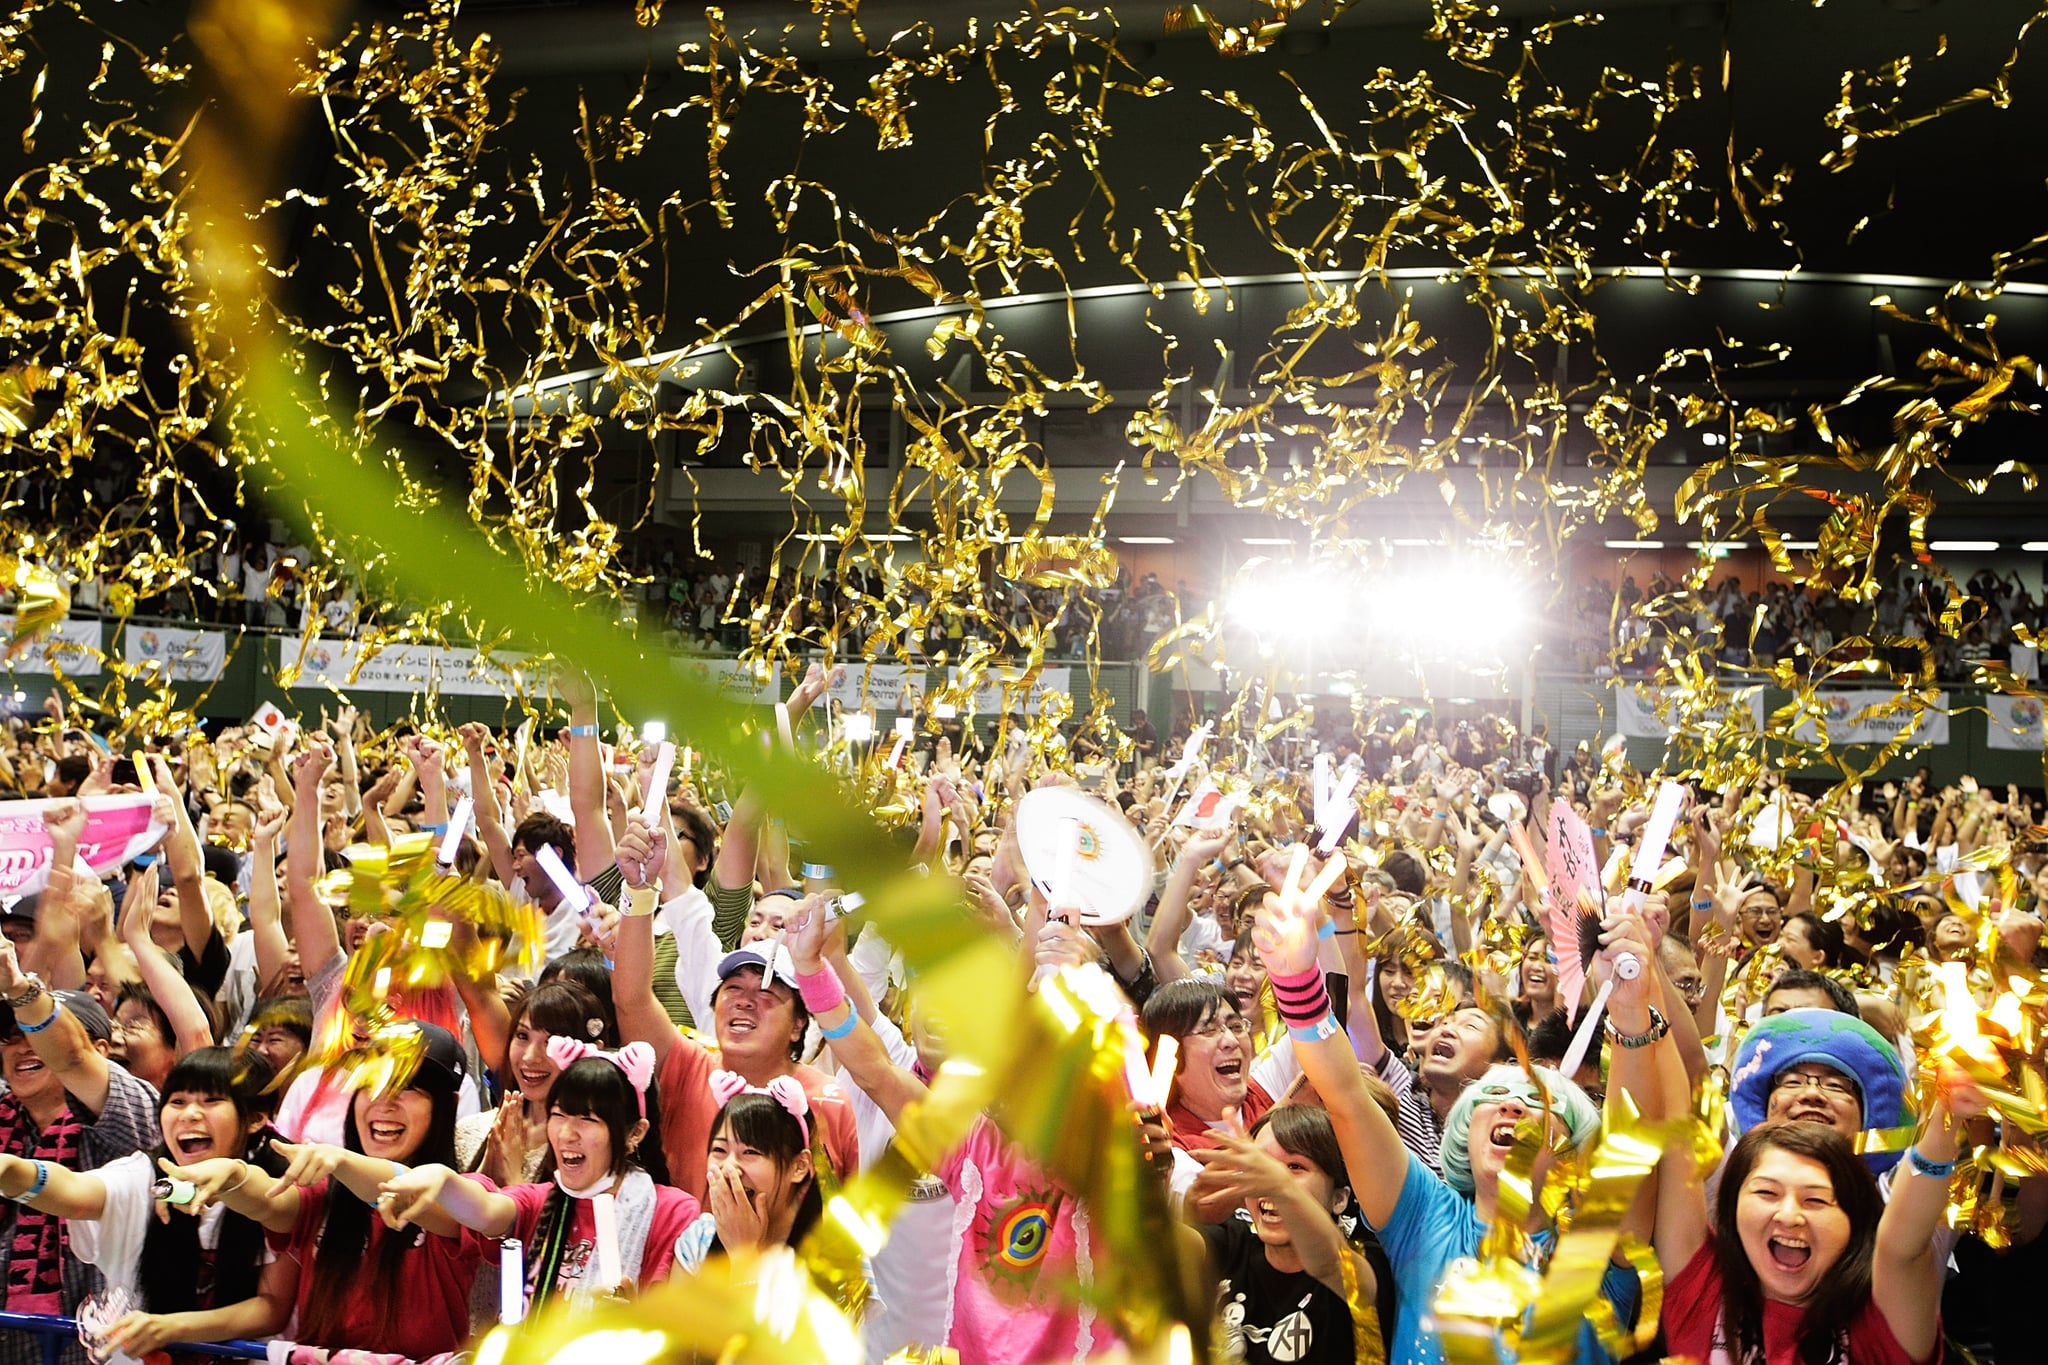 Confetti filled the air, and the crowd went wild.